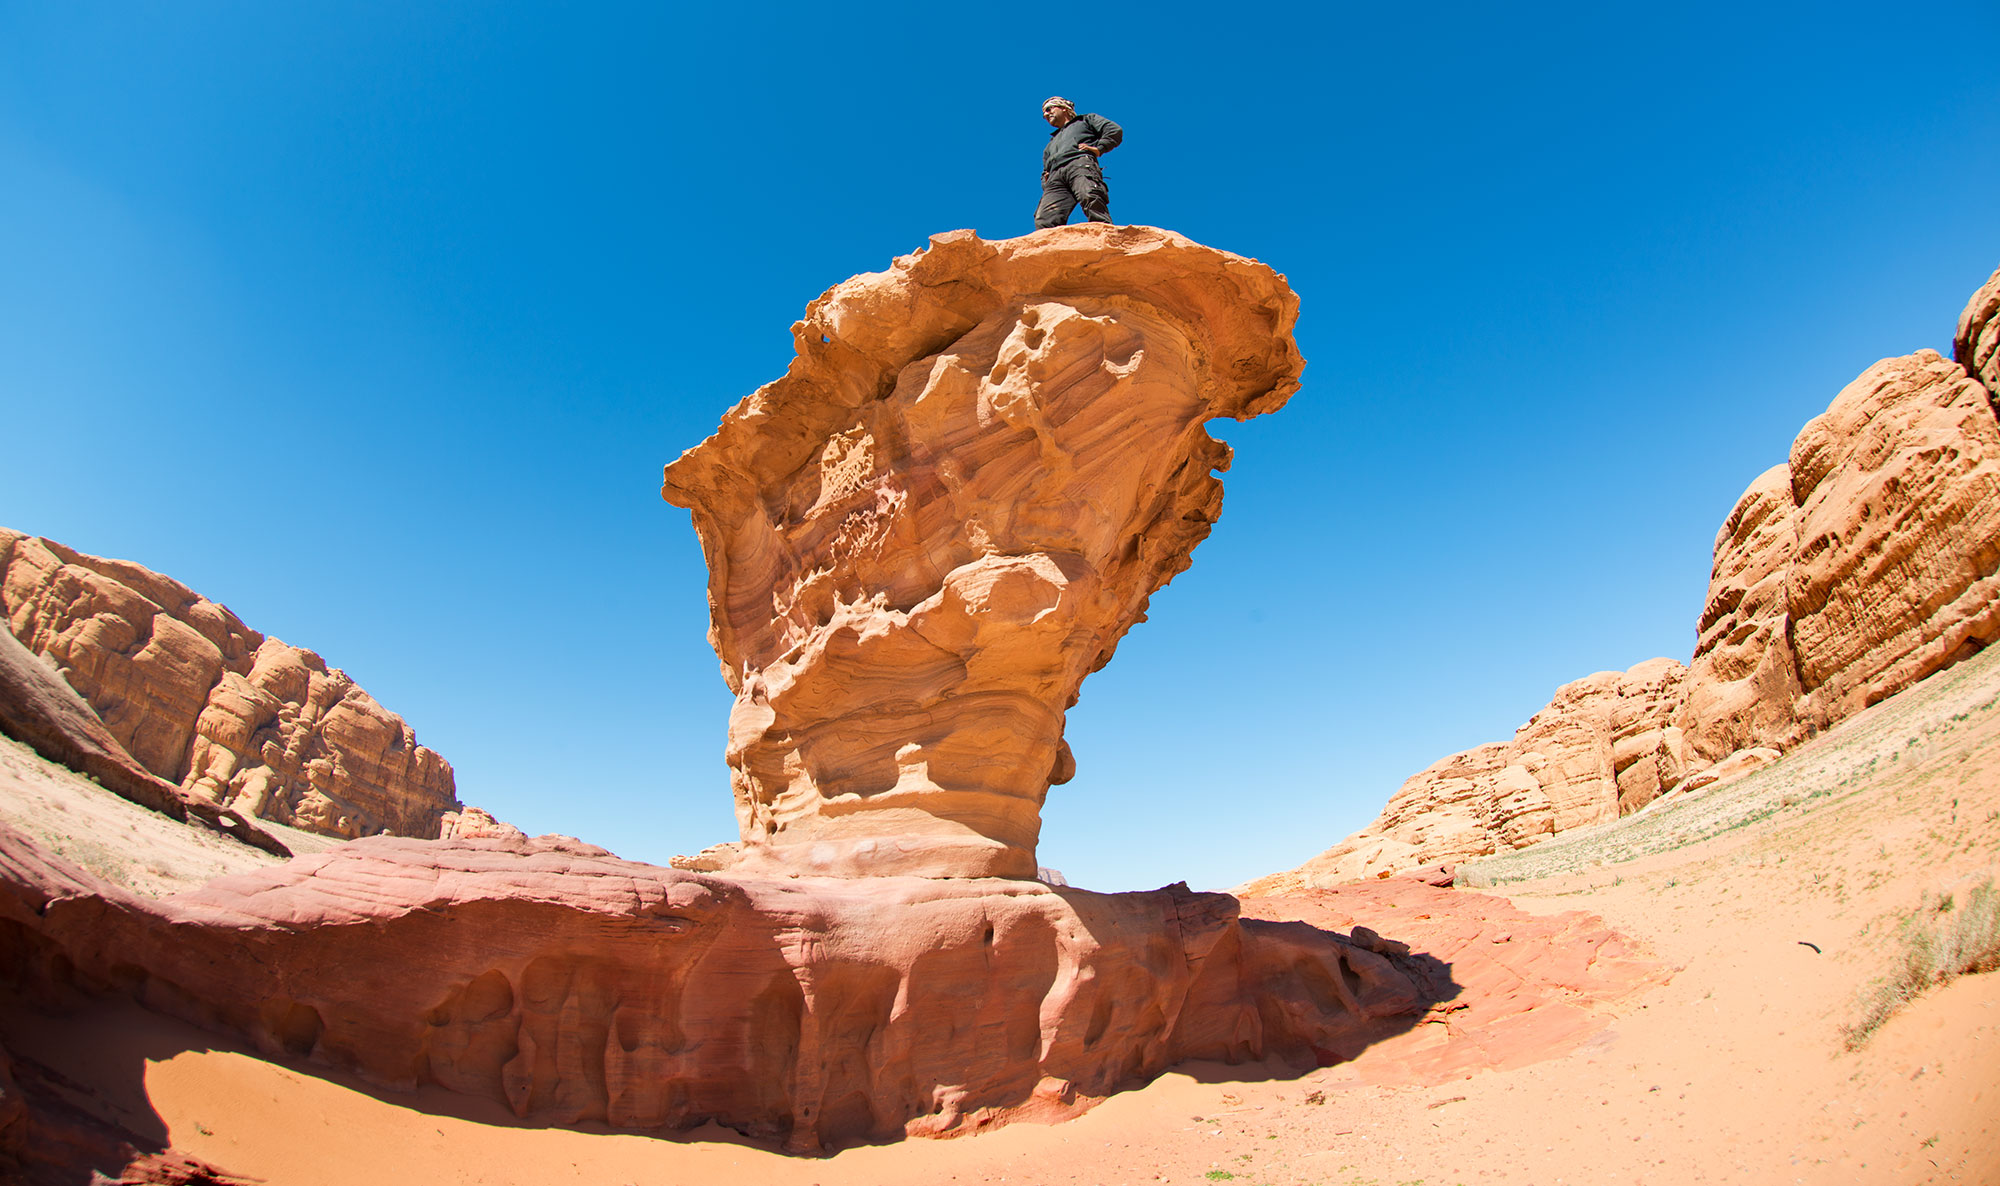 Incredible Monument of Wadi Rum